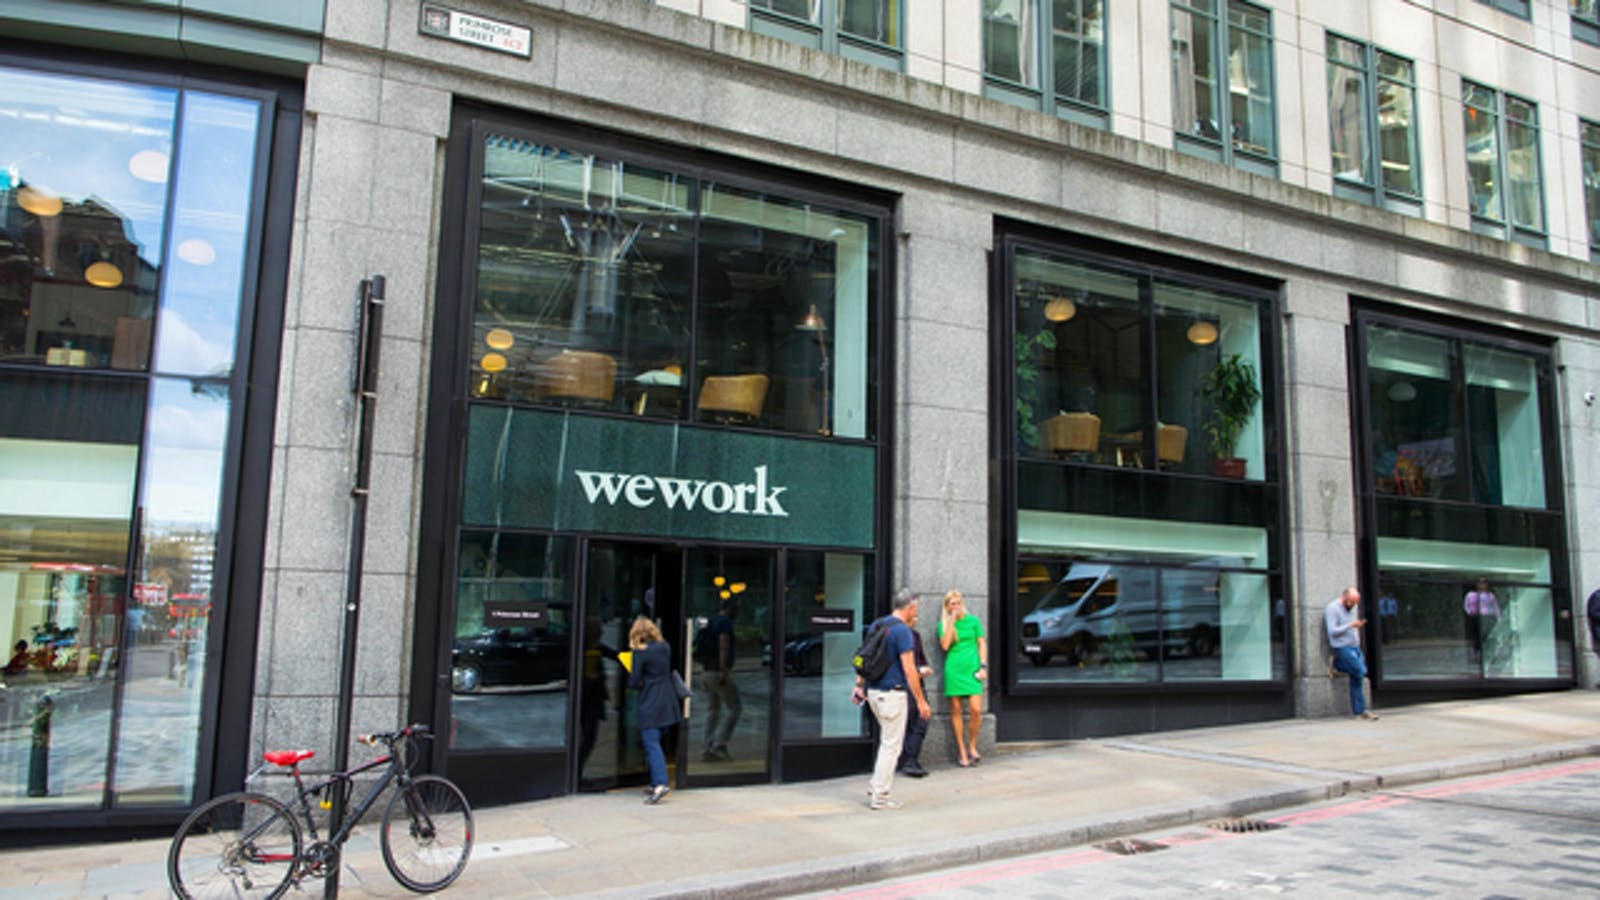 A WeWork office in London in 2017. Photo: Bloomberg